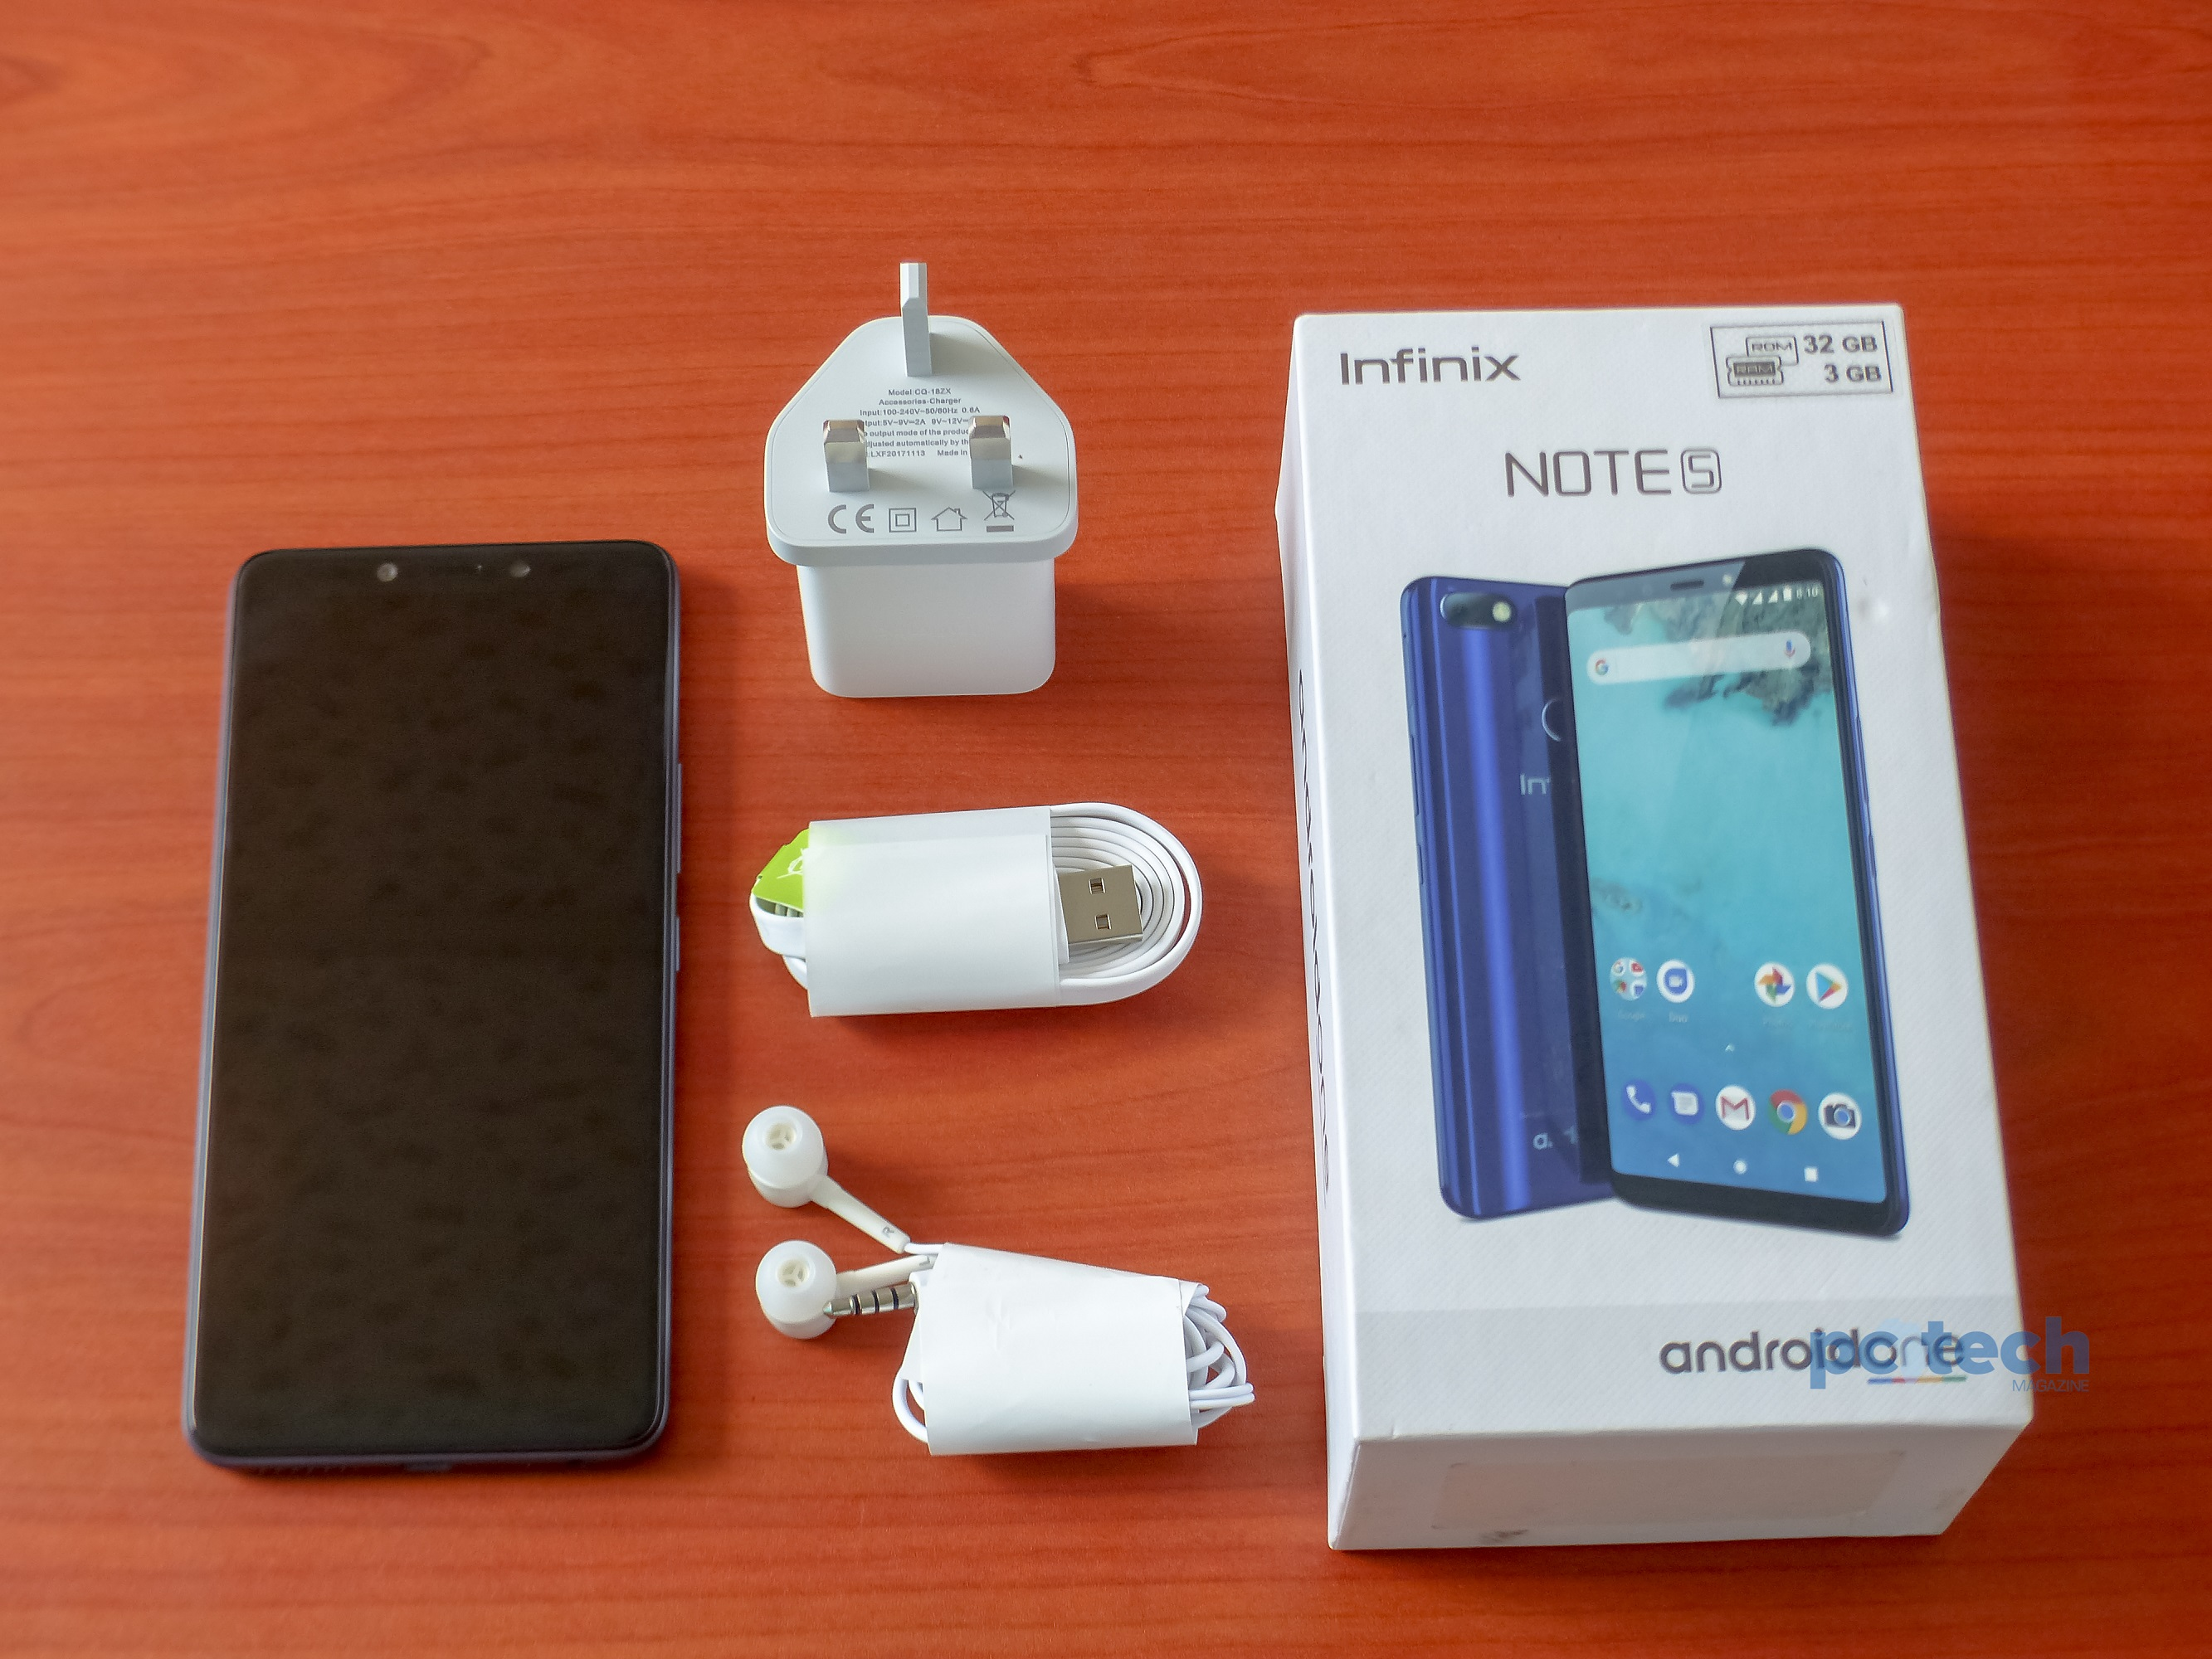 Infinix Note 5 Unboxing and First Impression: Fully Android